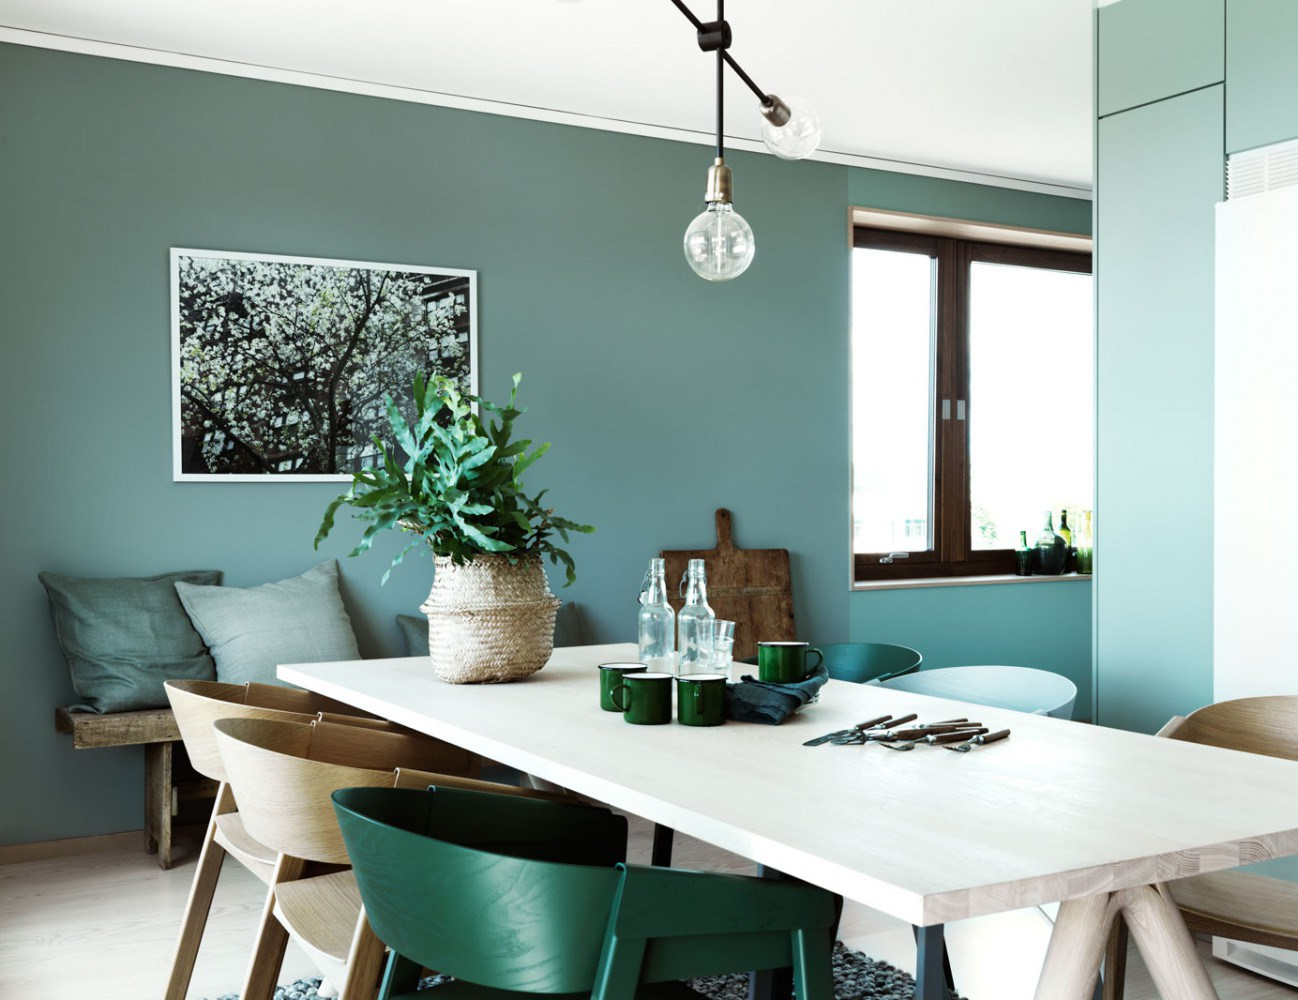 Tendencias de decoración 2017 paredes color verde oscuro